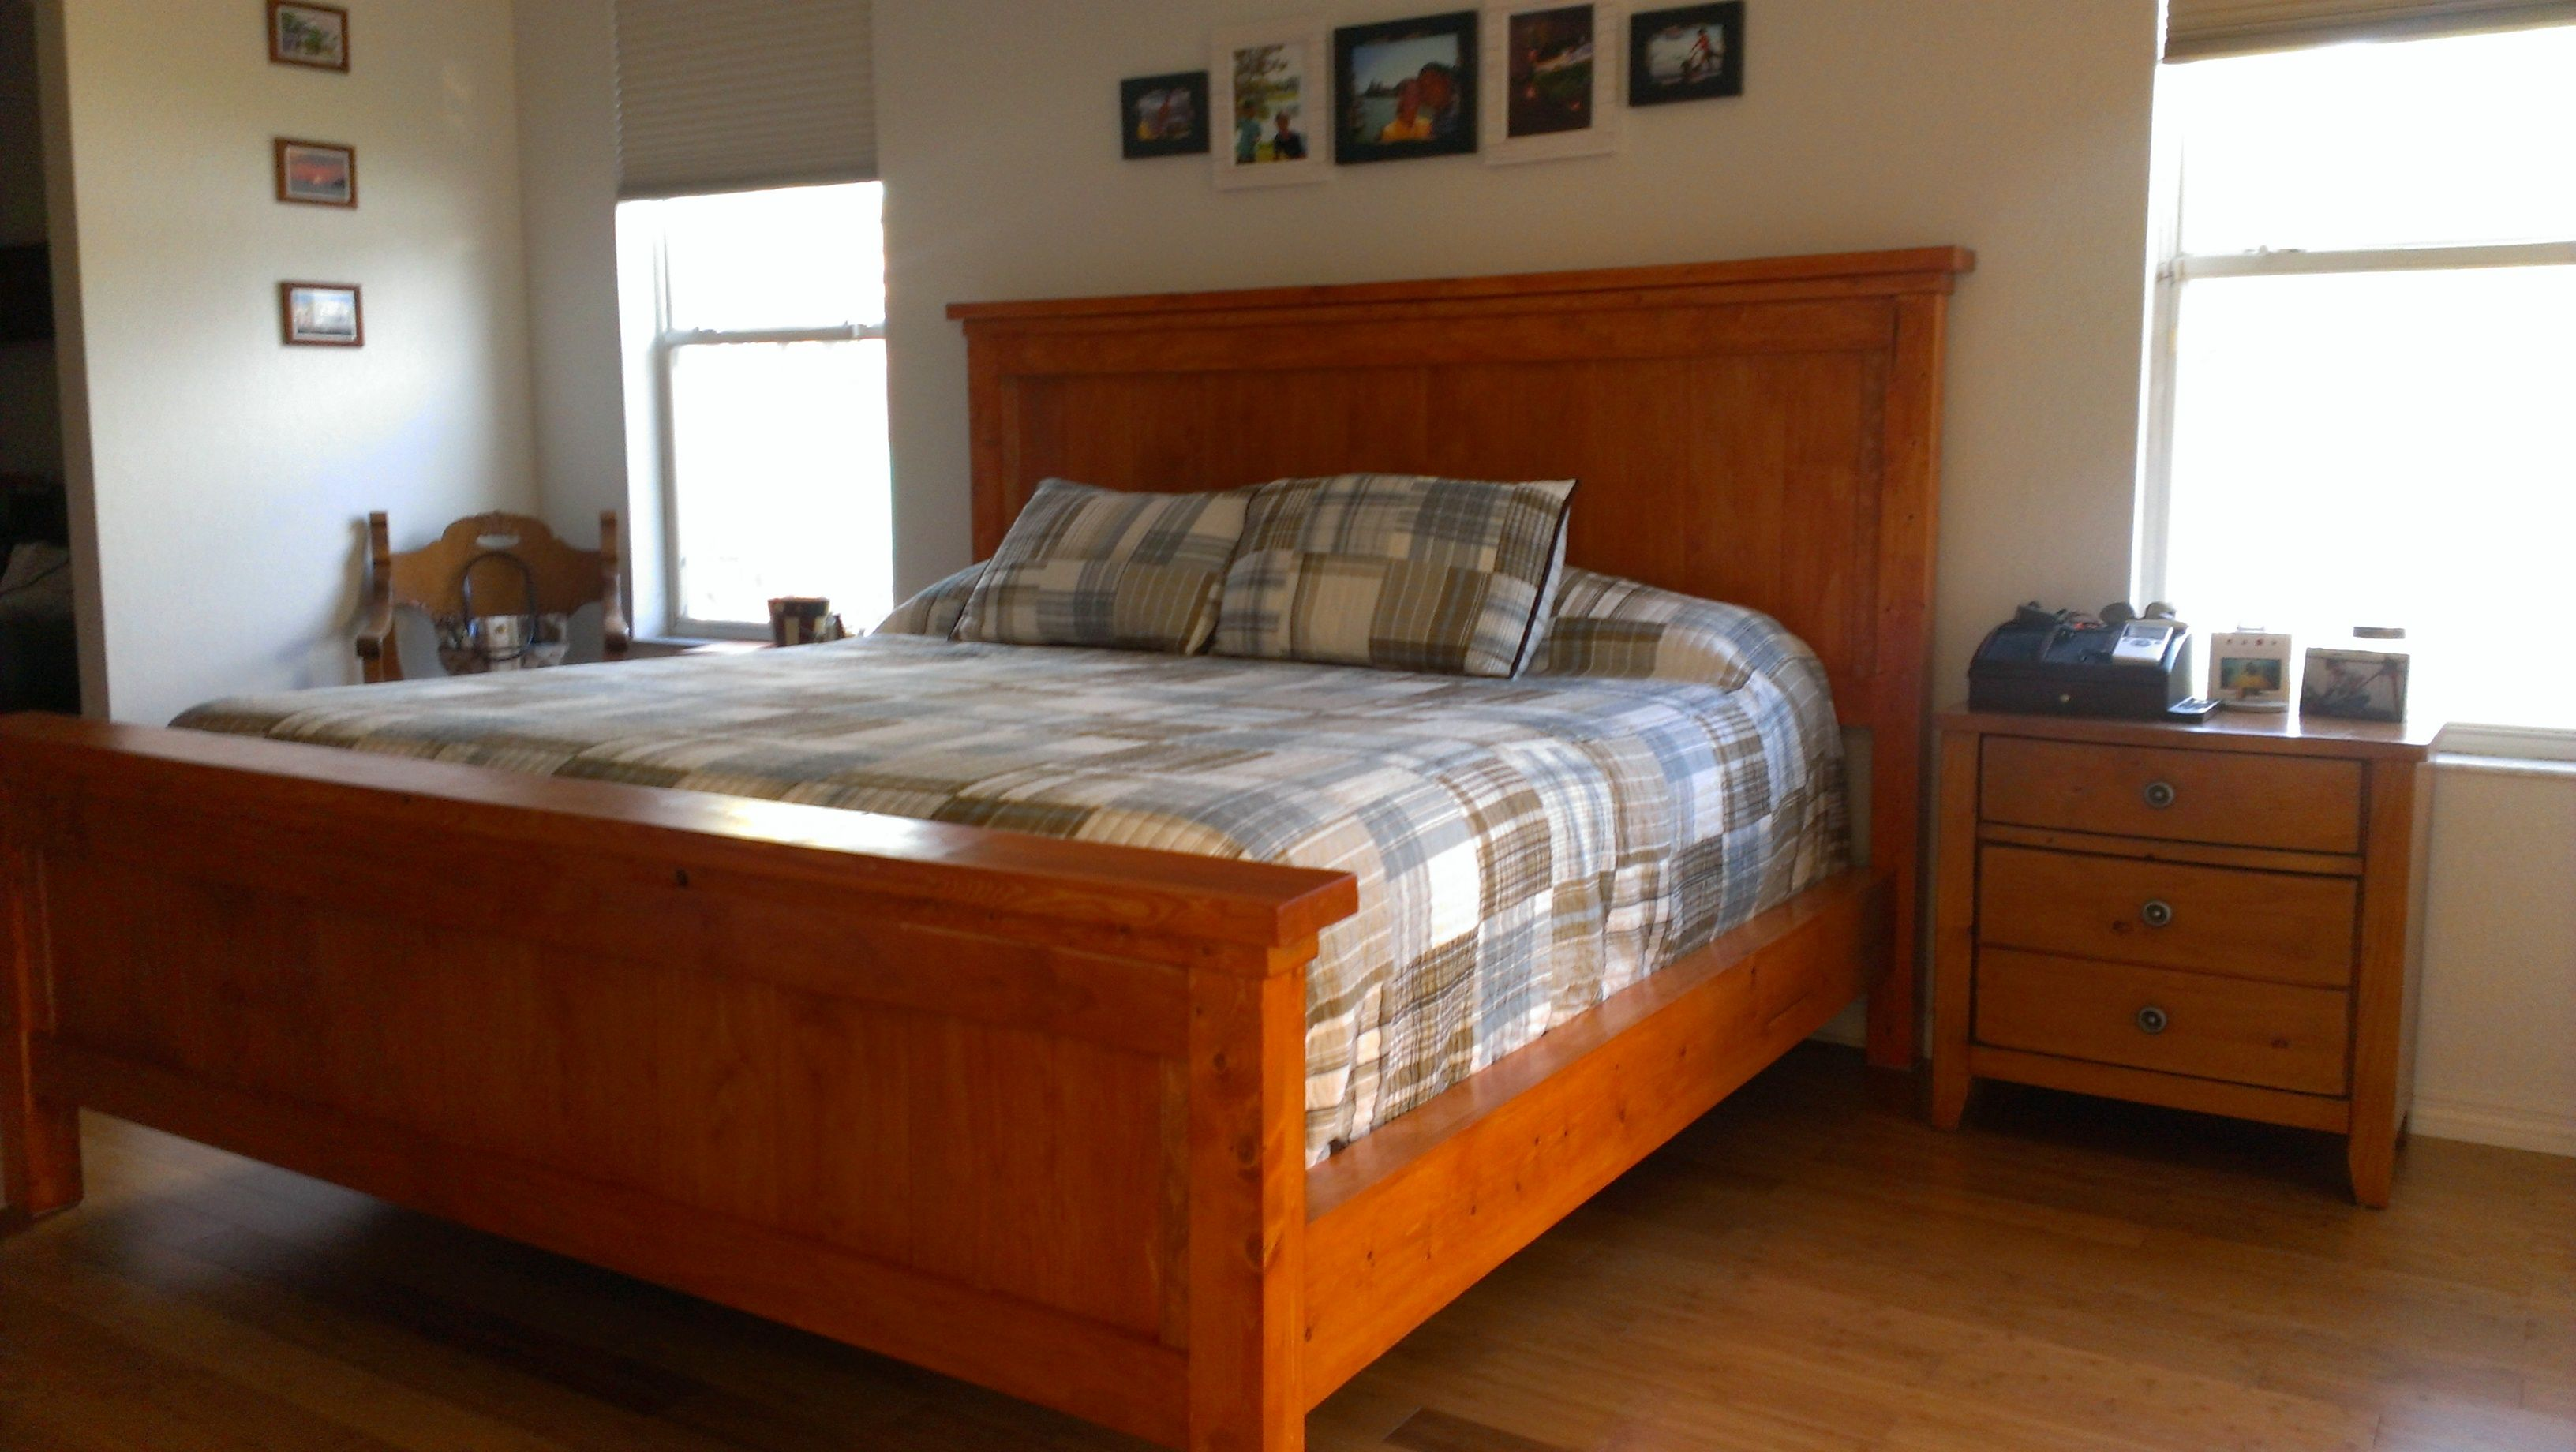 King Farm Bed Do It Yourself Home Projects from Ana